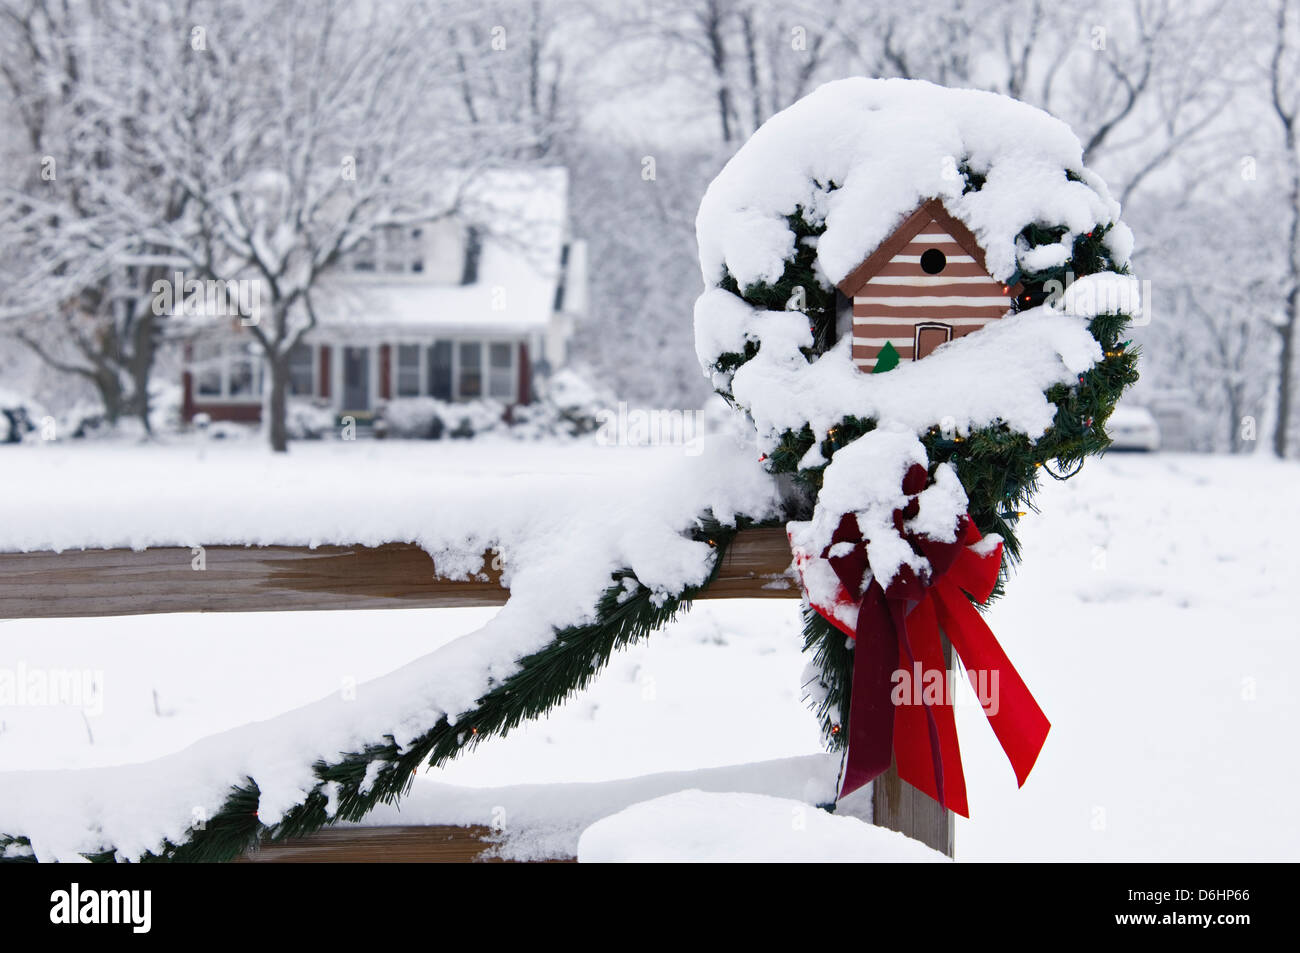 Fence And Farm Christmas Stock Photos & Fence And Farm Christmas ...